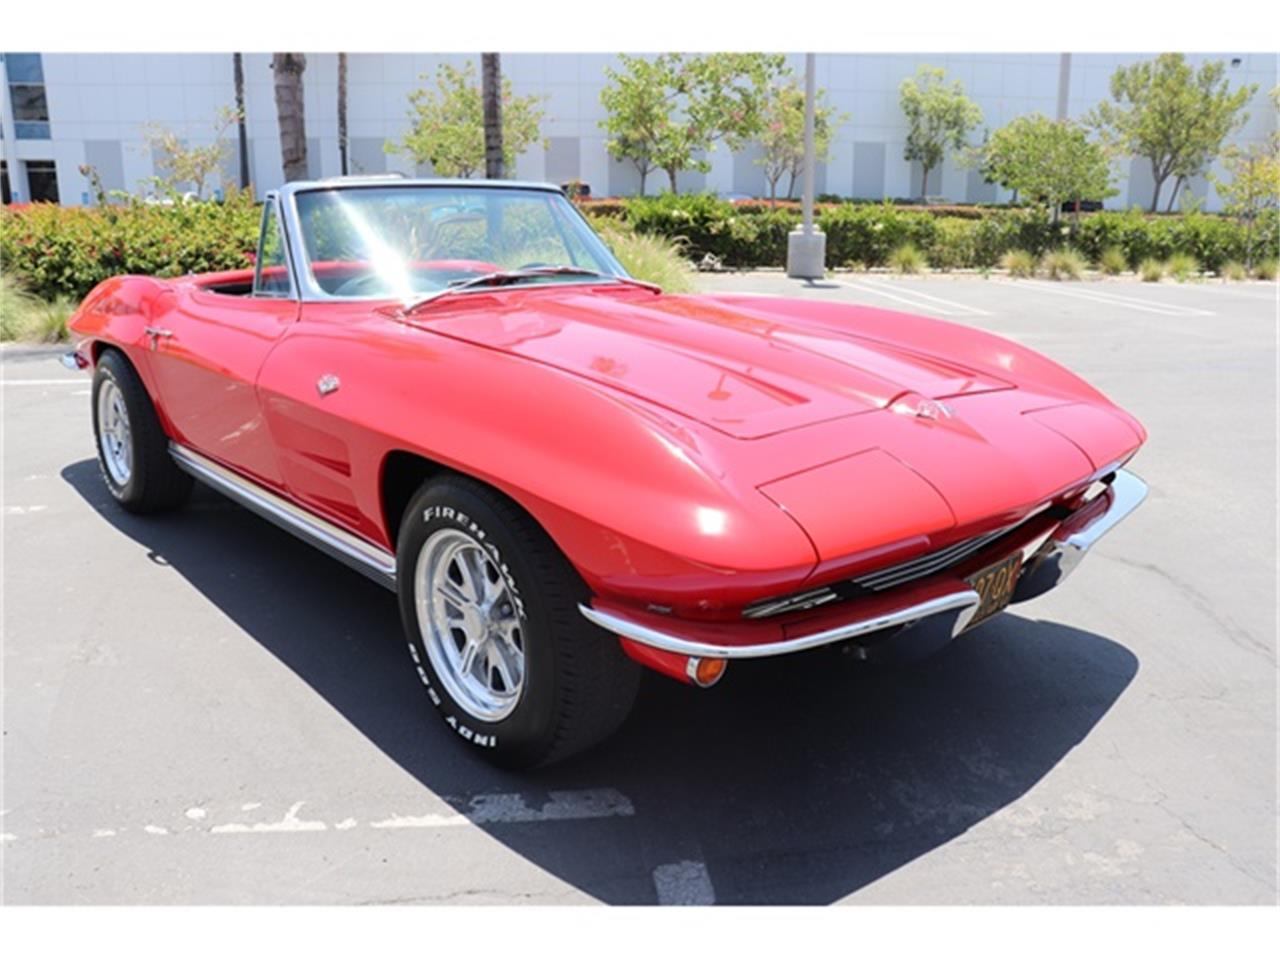 Large Picture of 1964 Chevrolet Corvette located in Anaheim California - $49,900.00 - NQ9M